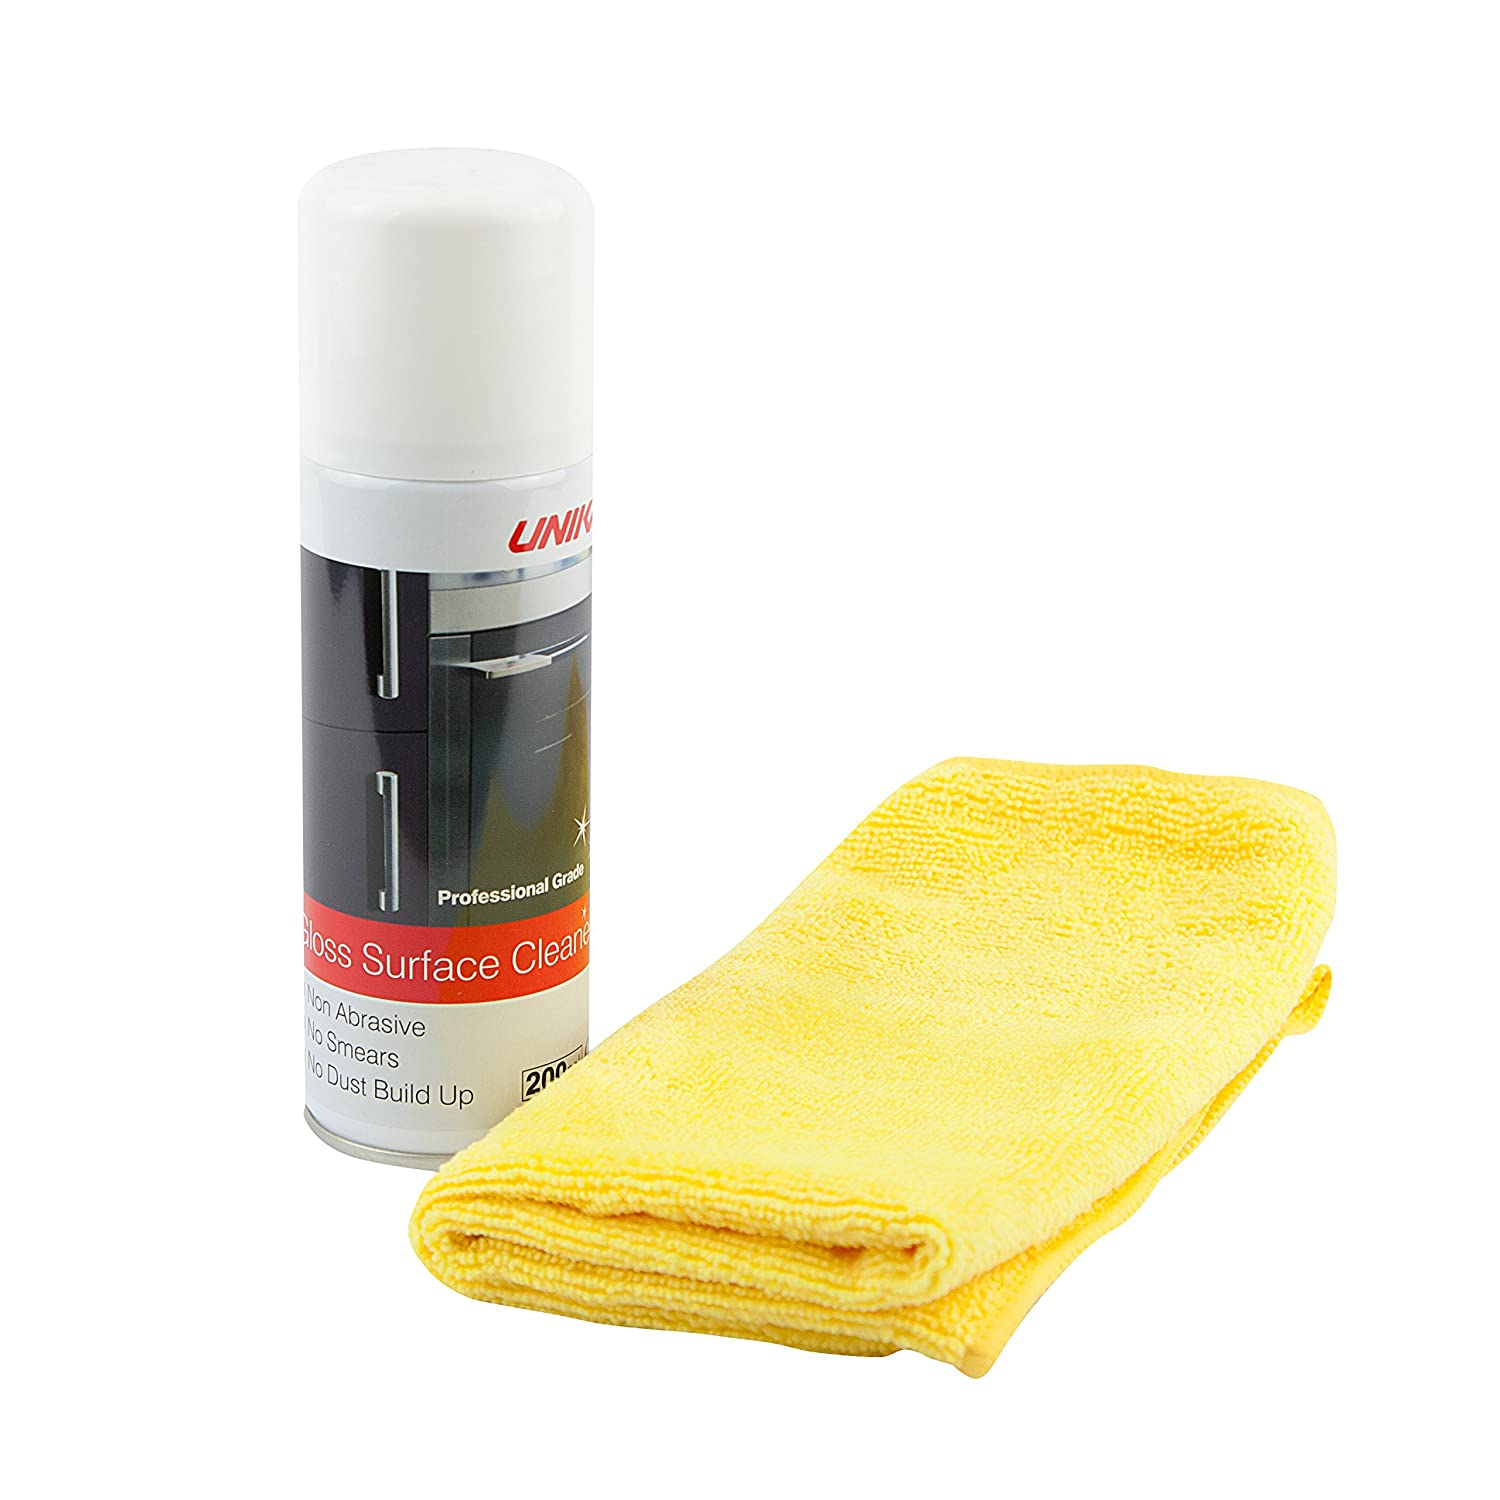 Unika Anti-Static Gloss Surface Cleaner & microfibre cloth 200ml - glass, chrome by Unika CLEANAST-AZ